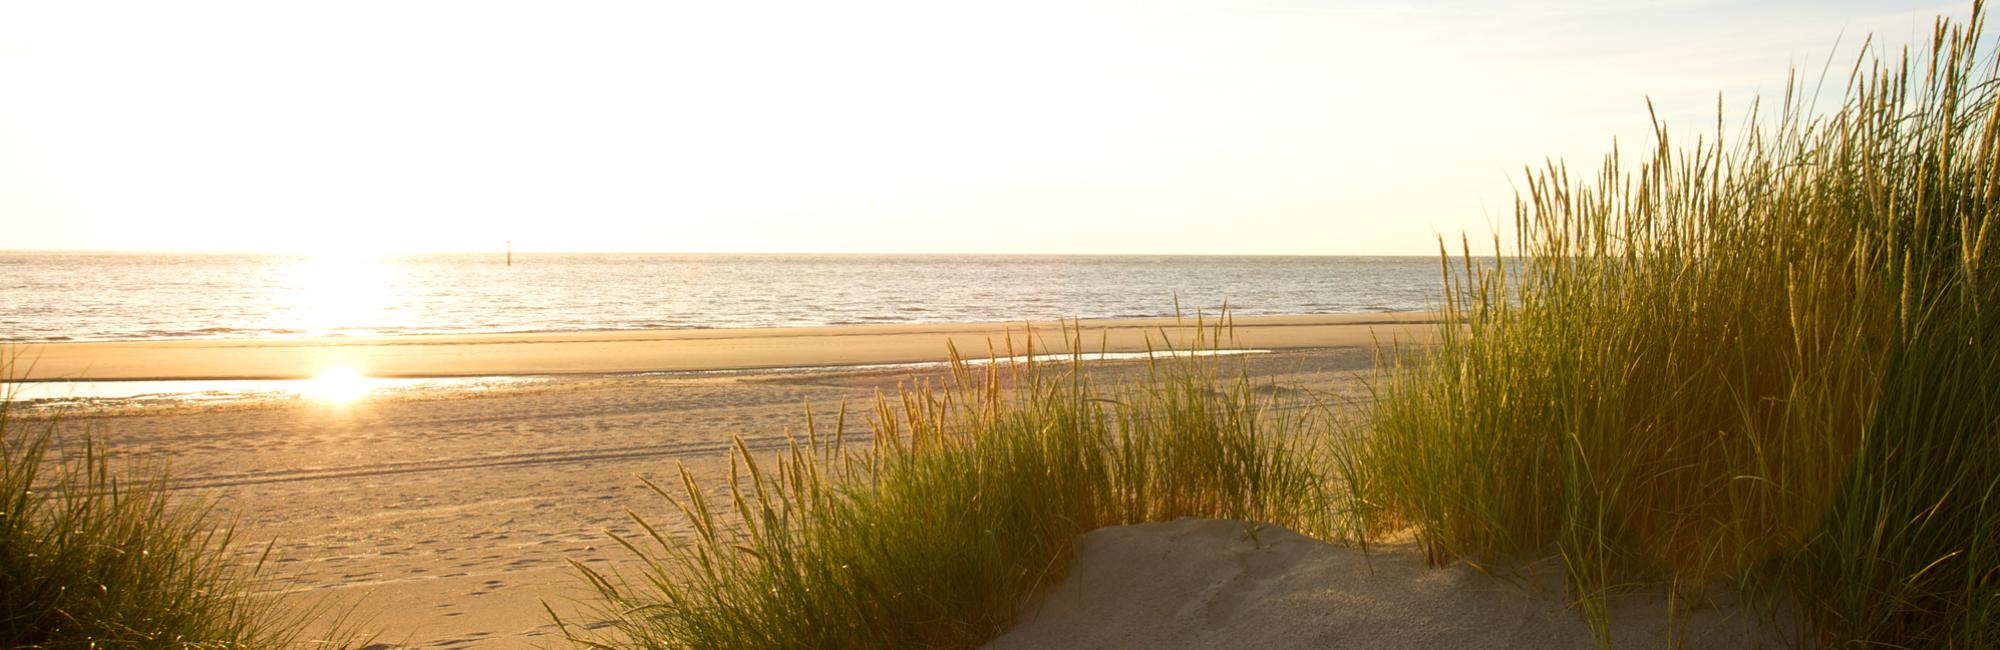 Dutch Bike Tours Radreisen Sand und Meer Tour